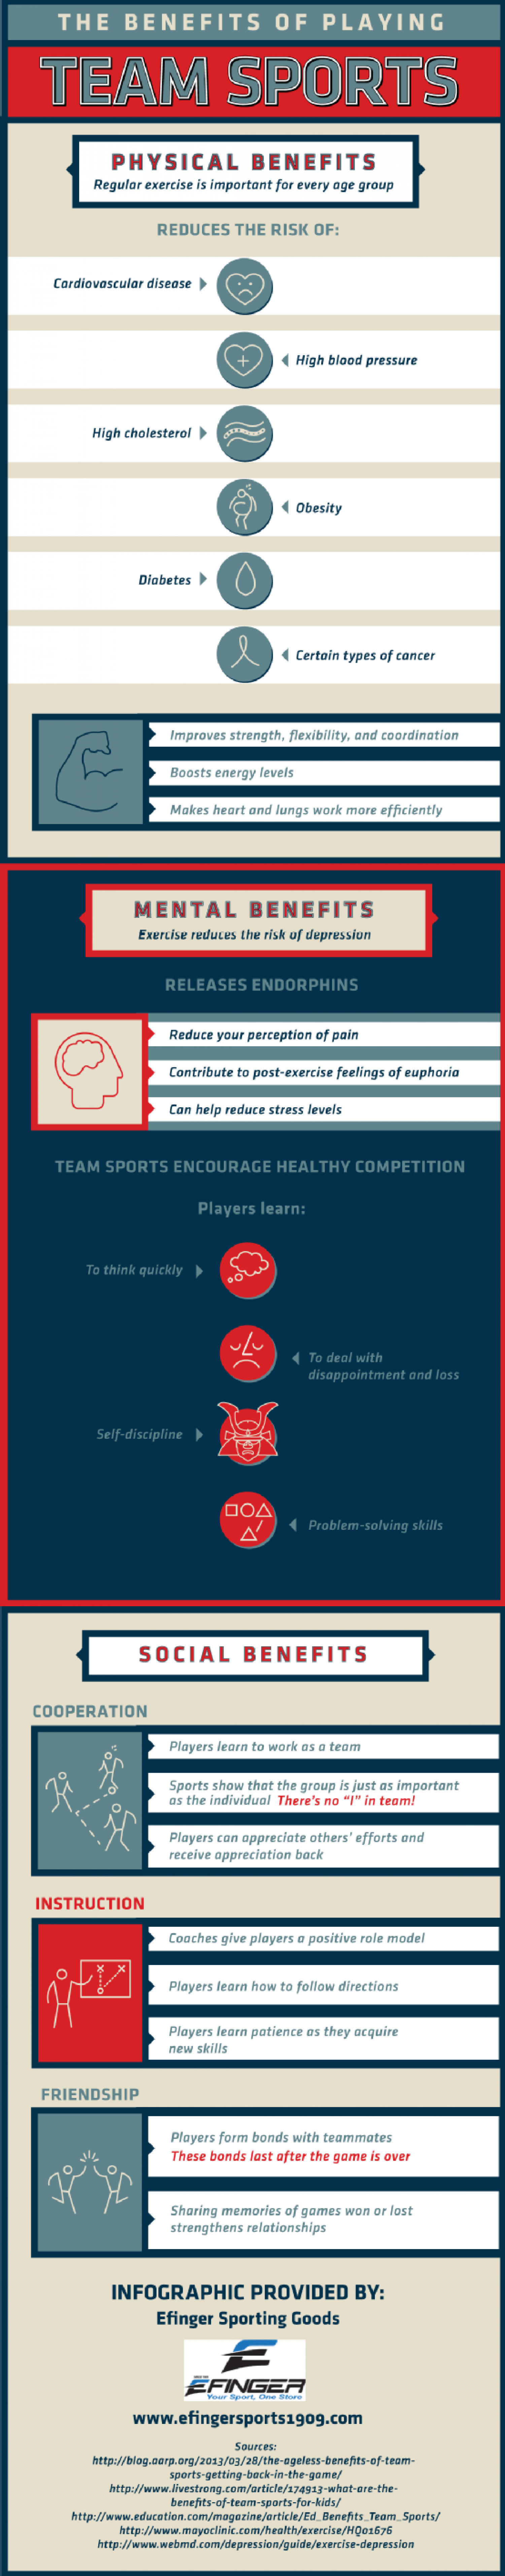 The Benefits of Playing Team Sports Infographic